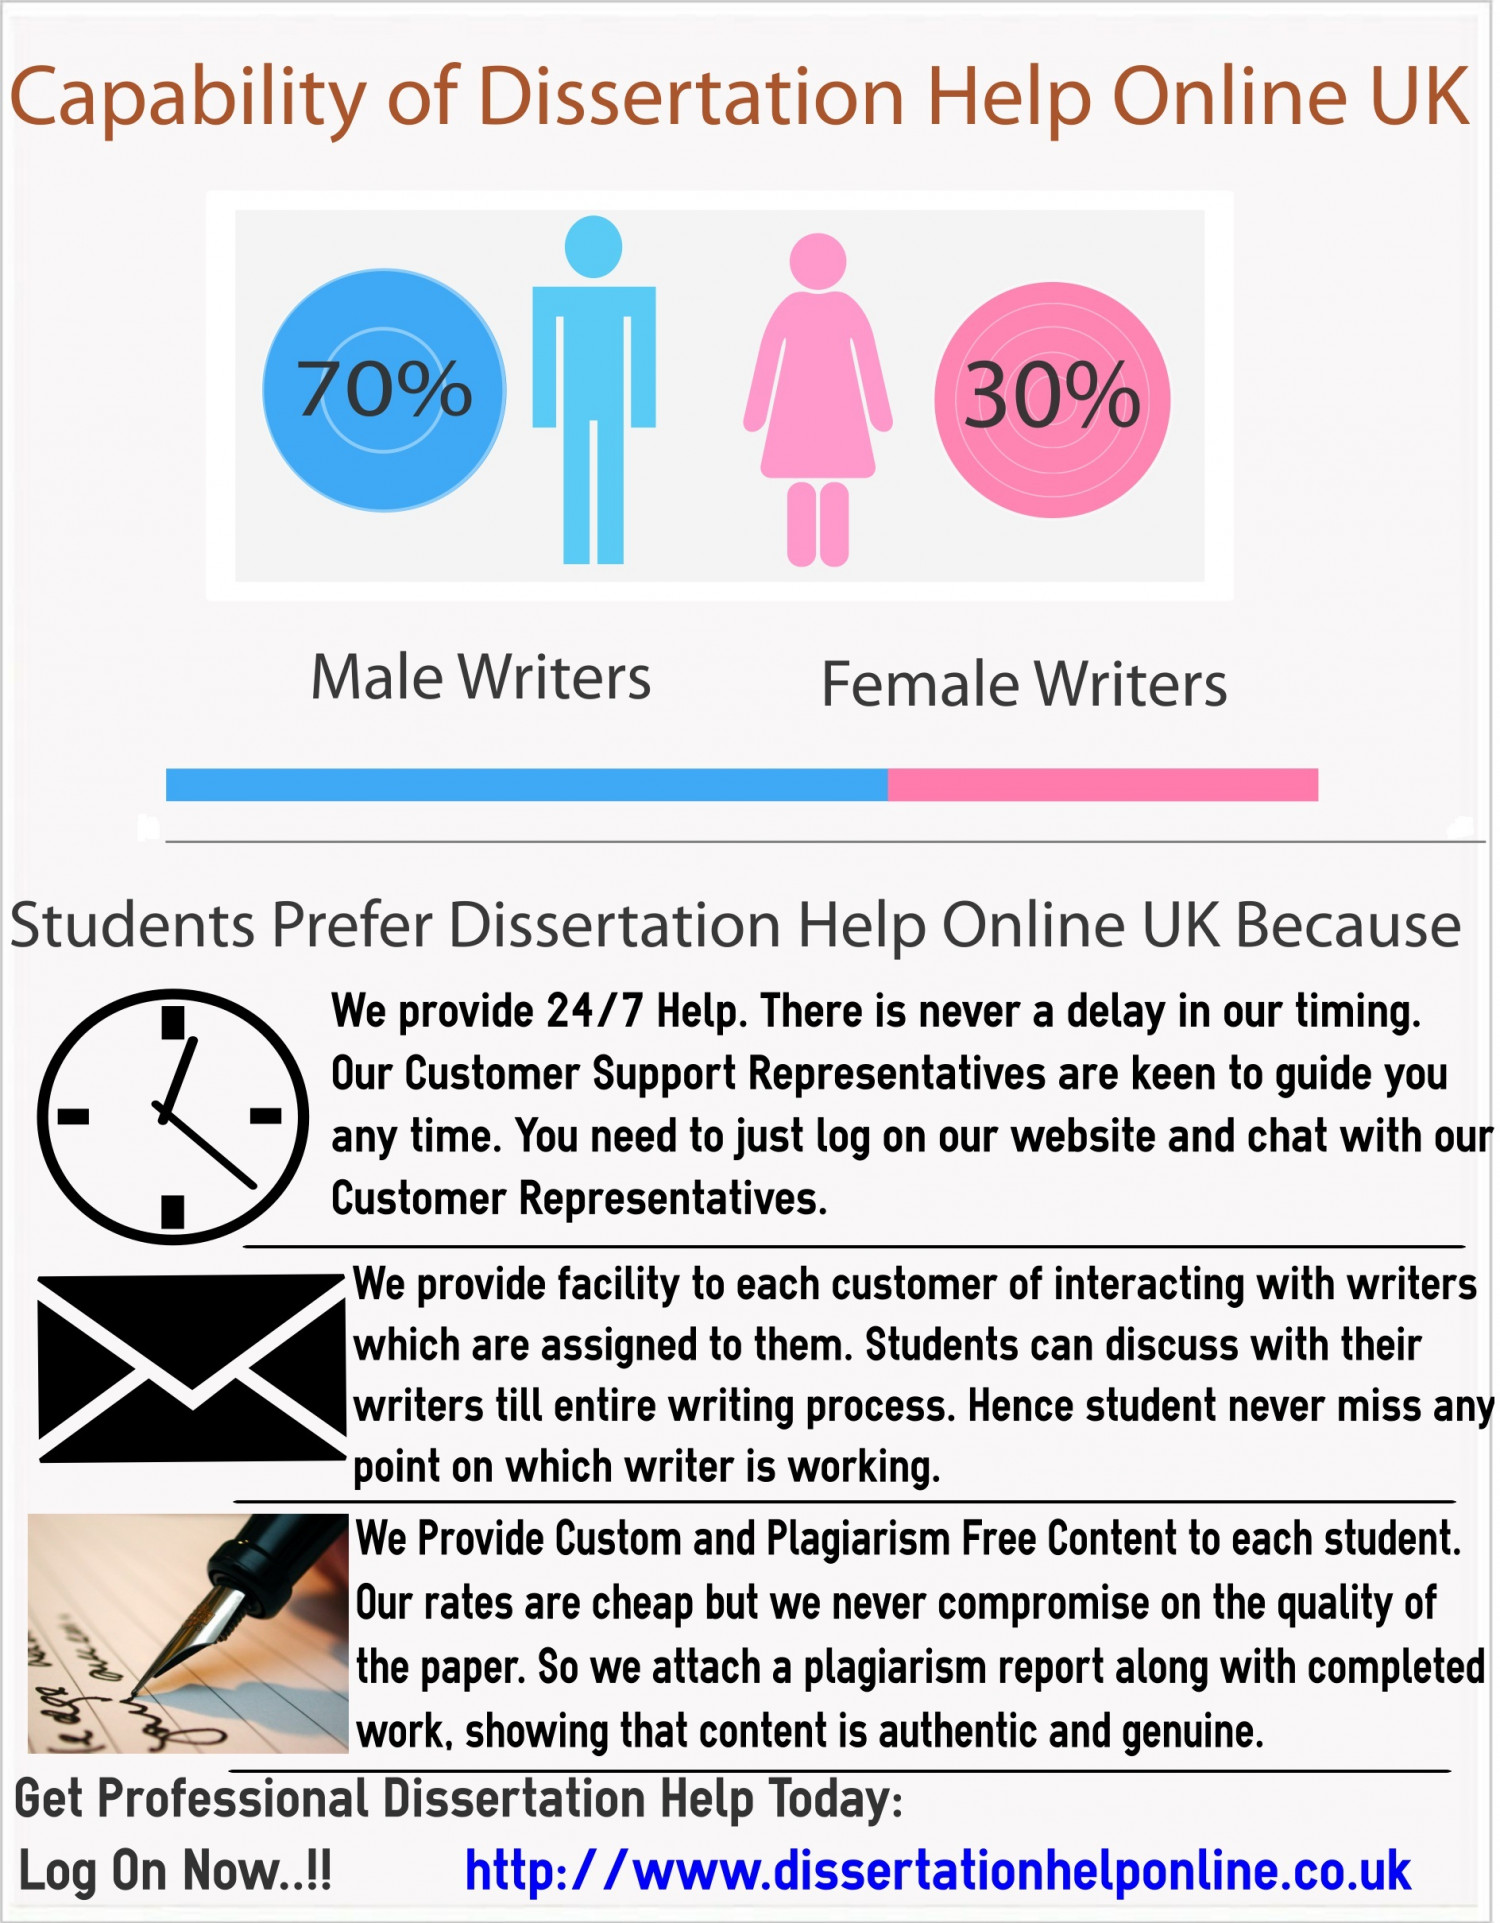 top personal essay ghostwriter for hire for college vault college     Cheap essays ghostwriter service online AppTiled com Unique App Finder  Engine Latest Reviews Market News Proper